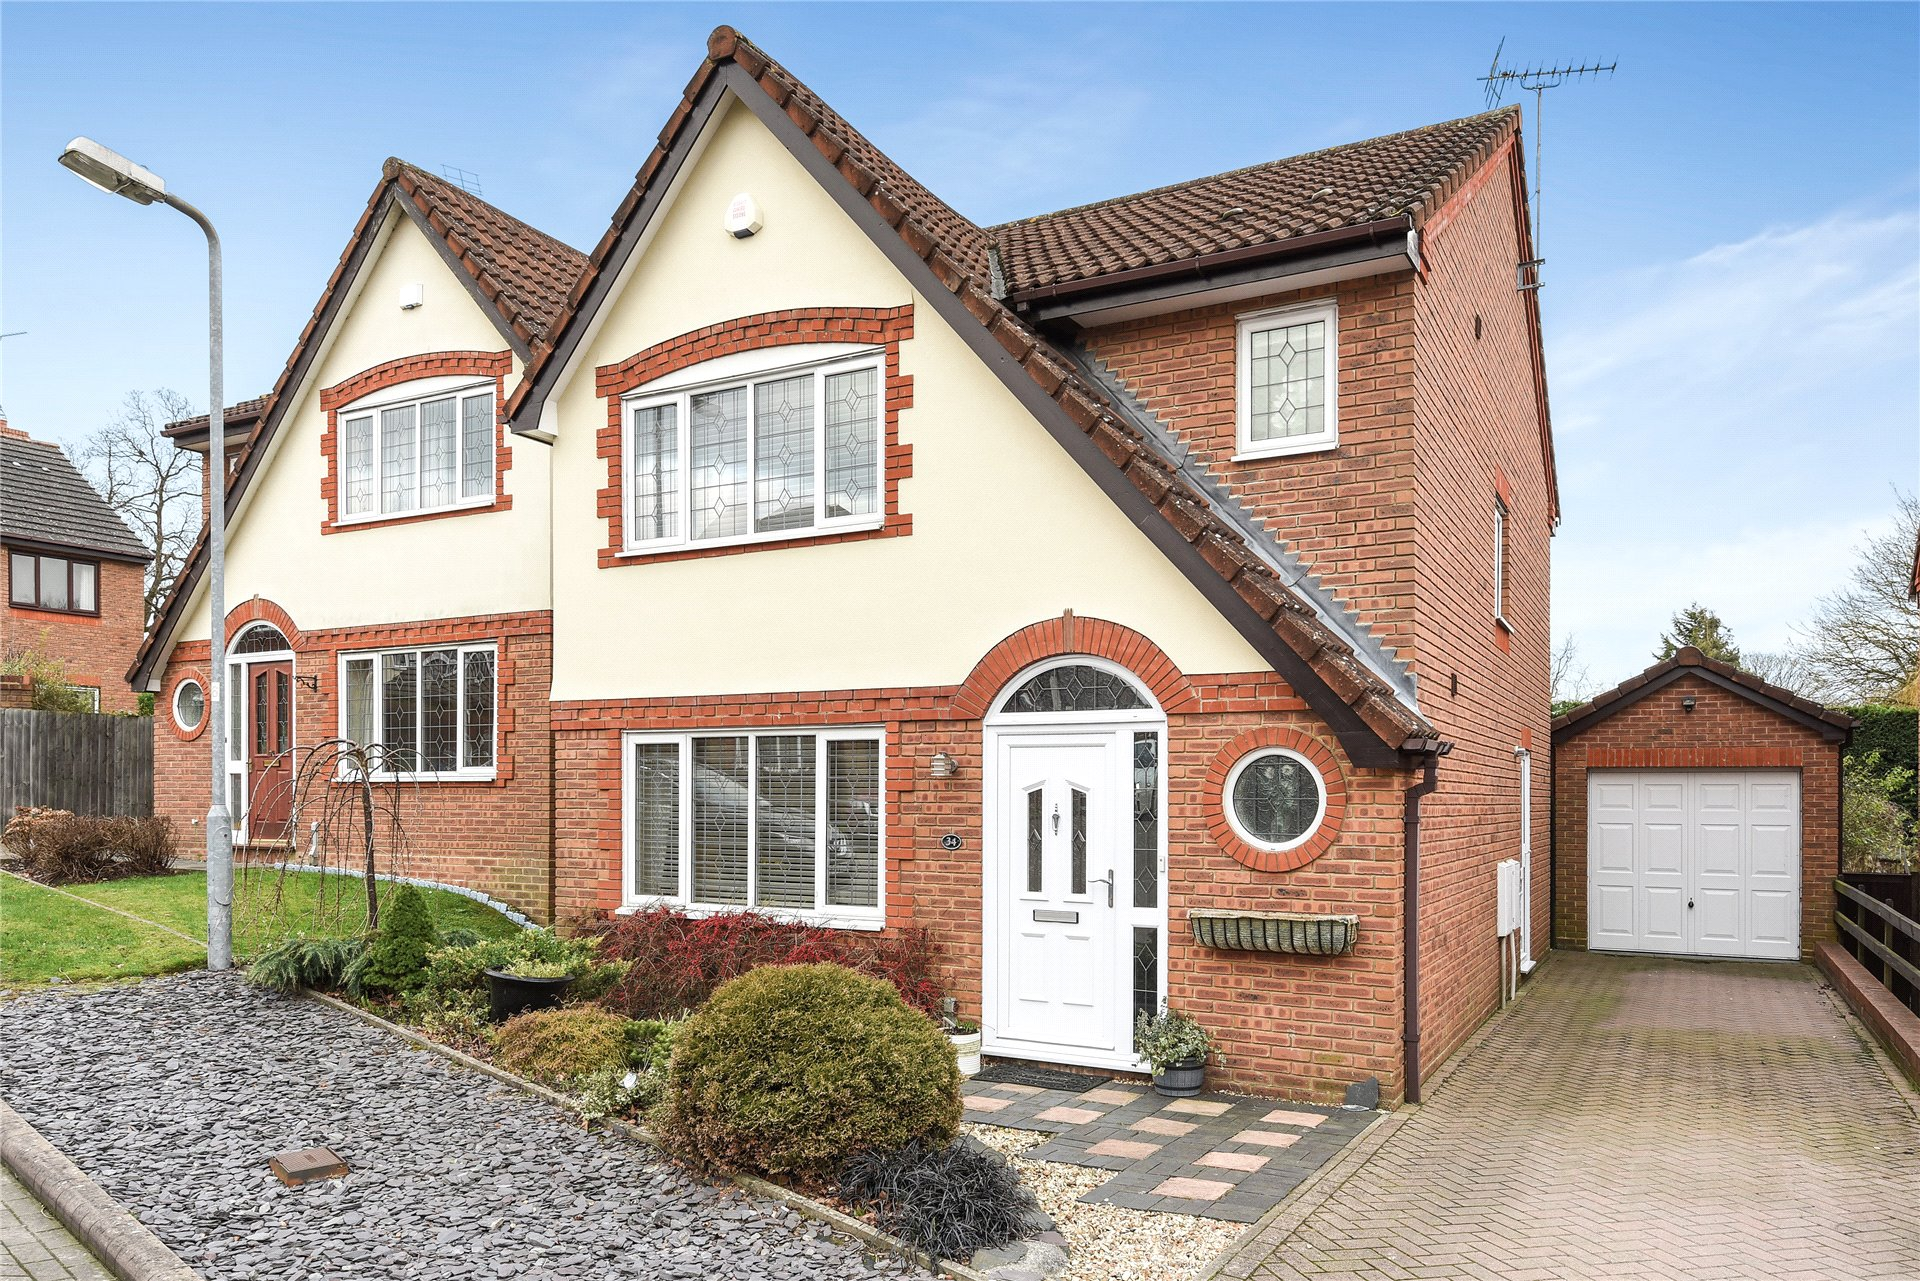 3 Bedrooms Detached House for sale in Huson Road, Warfield, Berkshire, RG42